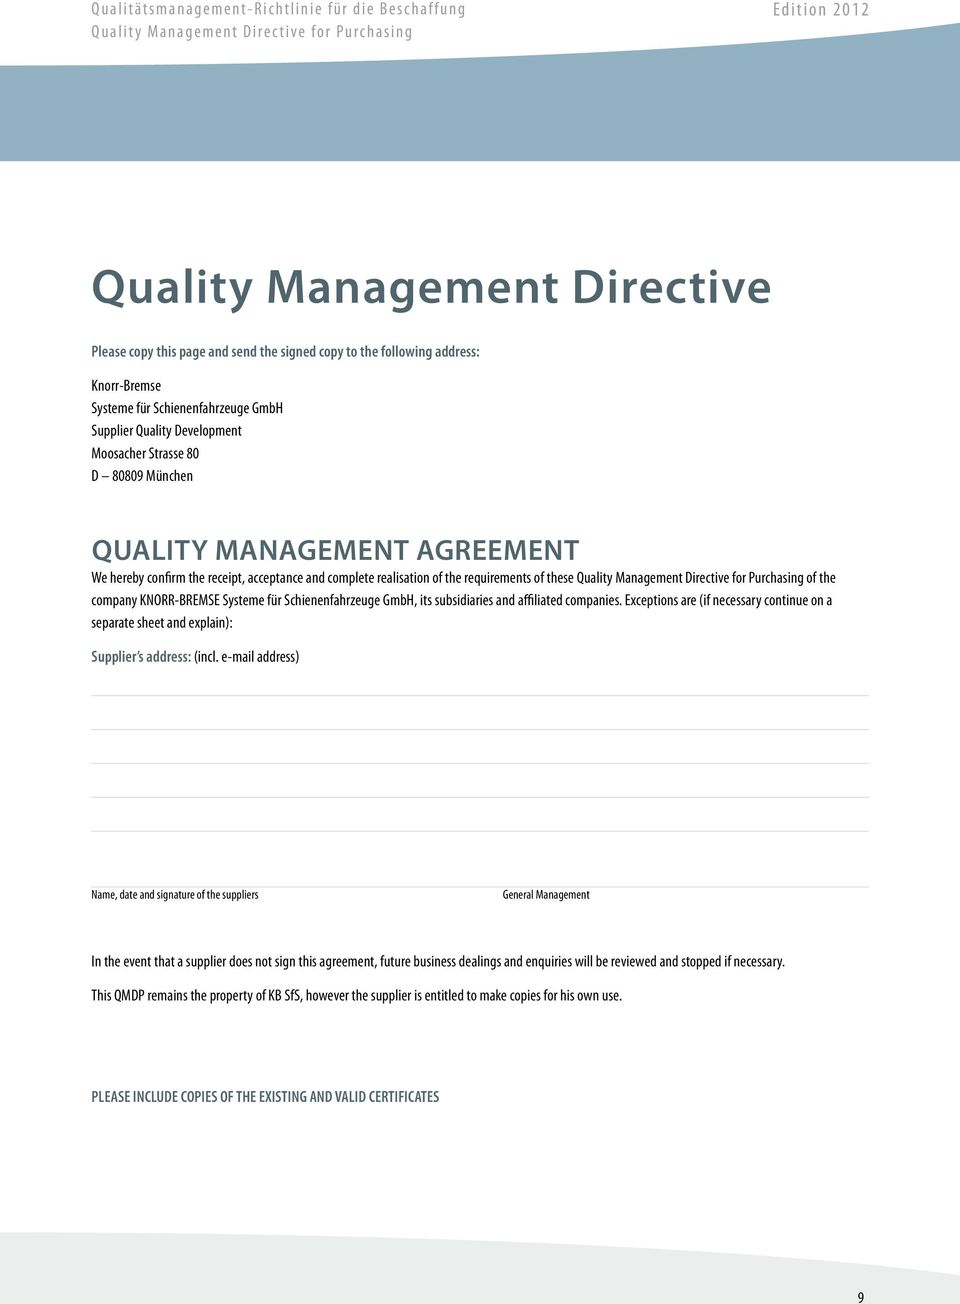 agreement We hereby confirm the receipt, acceptance and complete realisation of the requirements of these Quality Management Directive for Purchasing of the company KNORR-BREMSE Systeme für